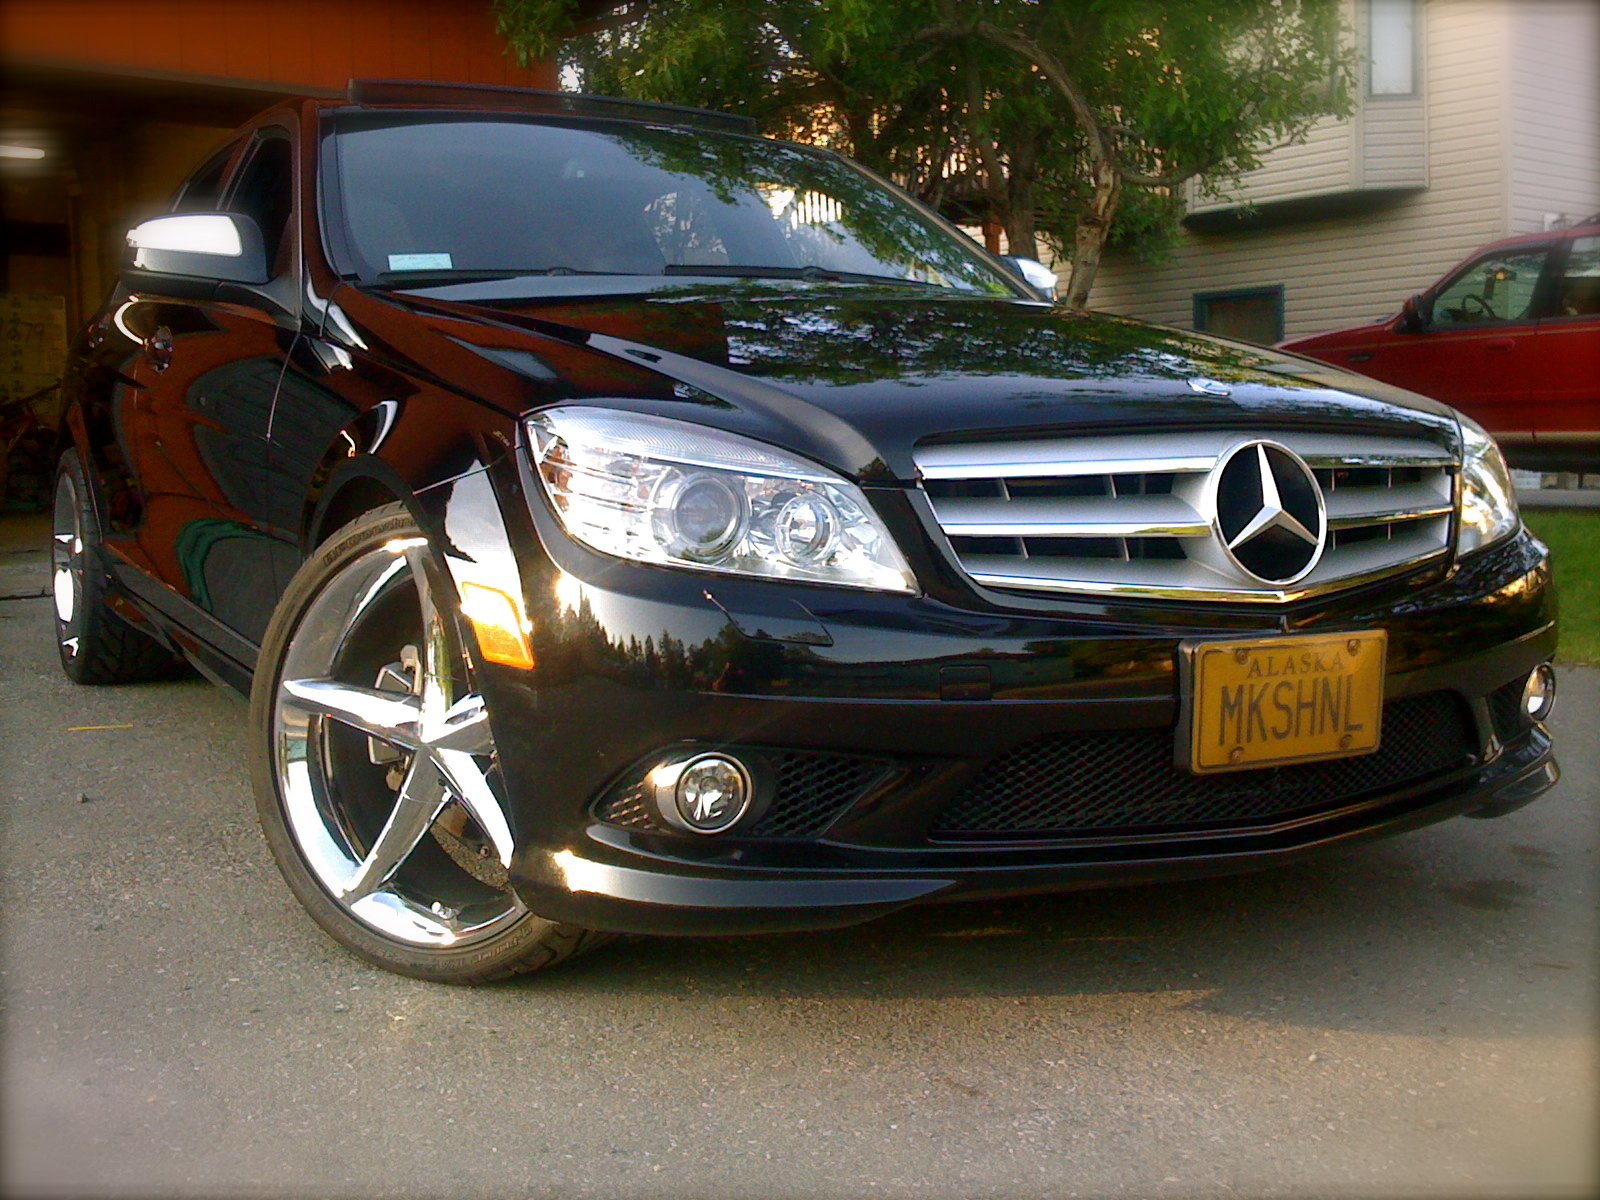 i14it2's 2008 Mercedes-Benz C-Class